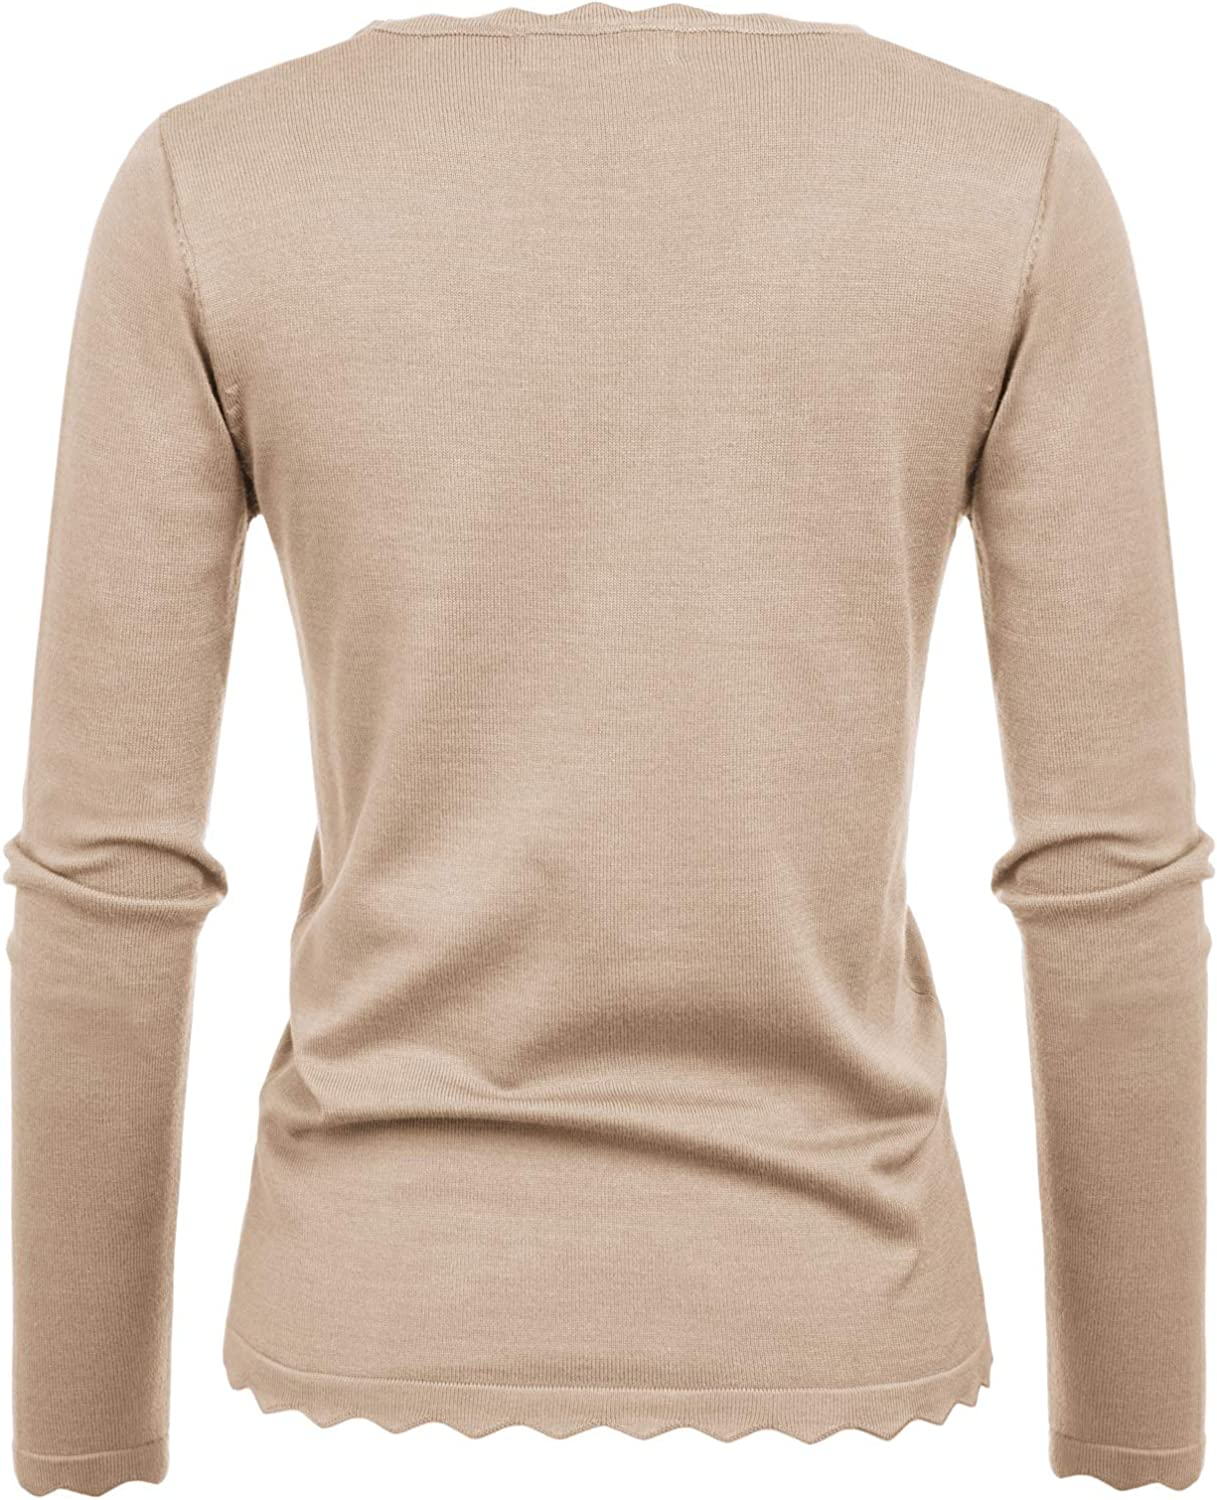 GRACE KARIN Women's High Stretchy Long Sleeve Pullover Sweater Blouse Top